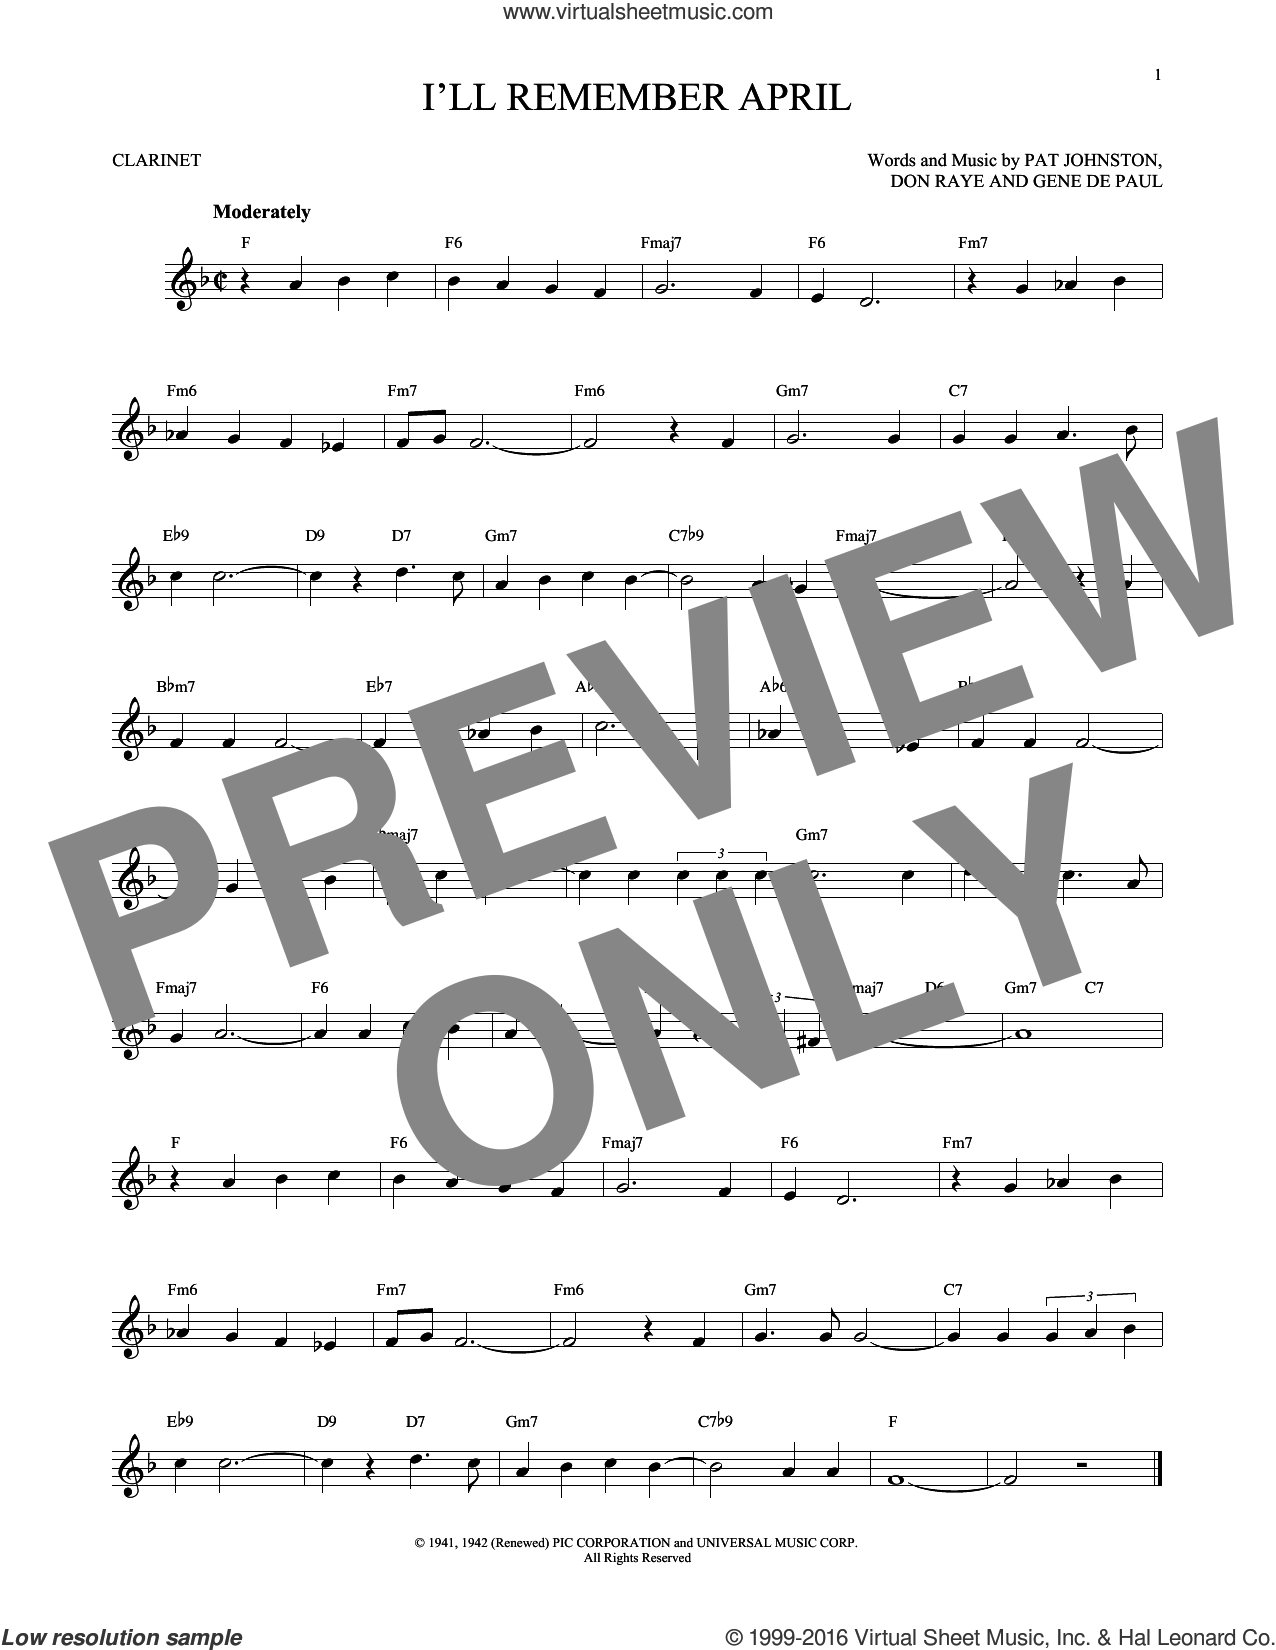 I'll Remember April sheet music for clarinet solo by Pat Johnston